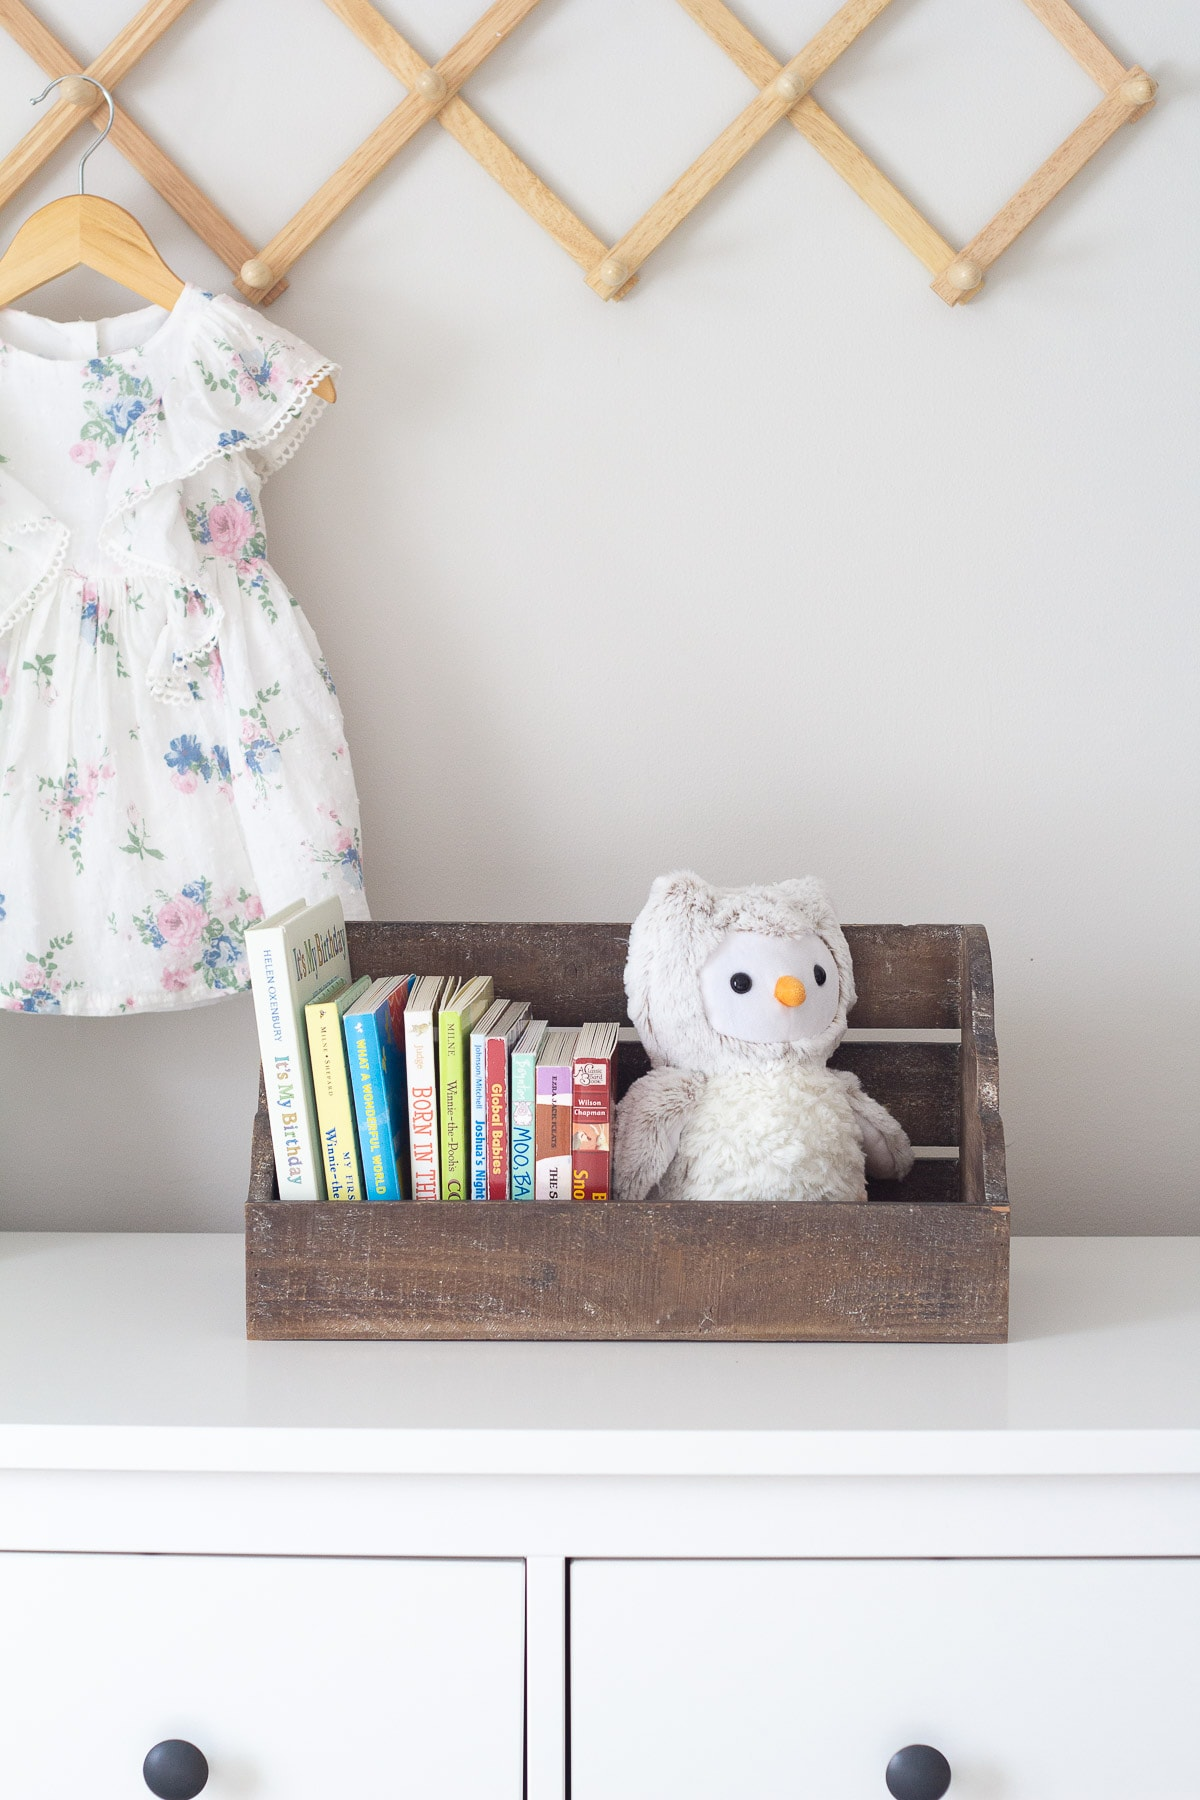 Kids book's displayed in a wall shelf cubby on a dresser.